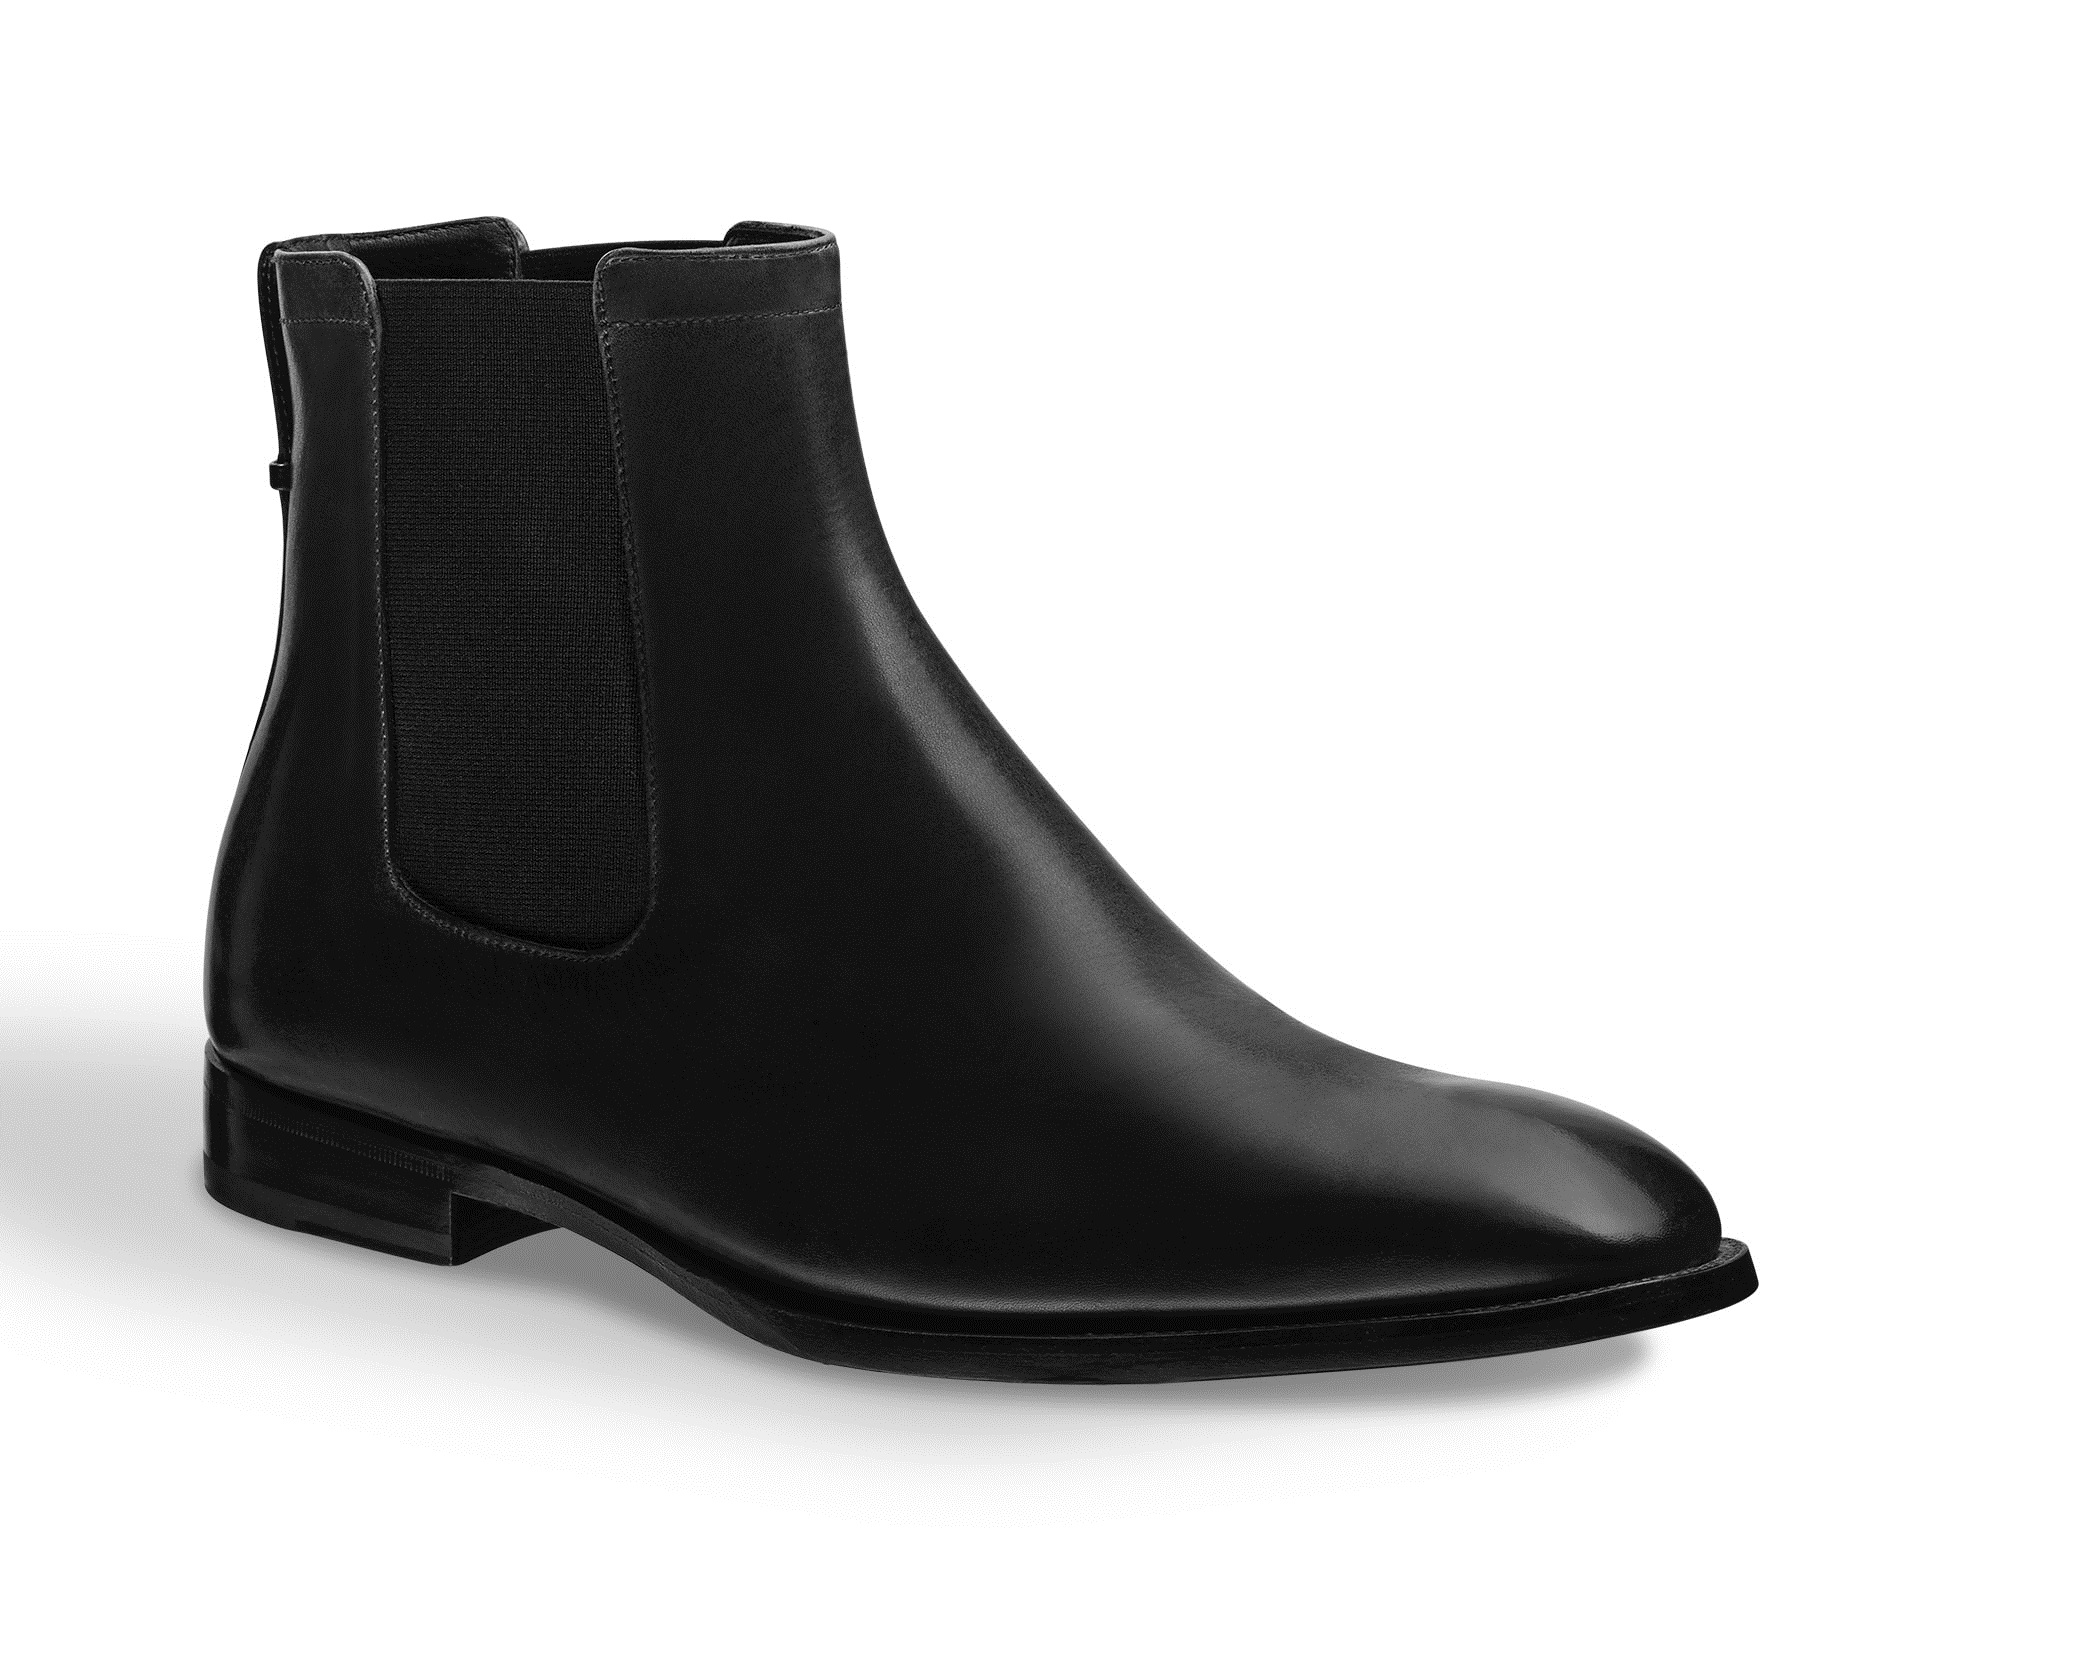 Handmade Mens Fashion Black Ankle Chelsea Leather Boots, Men's ...